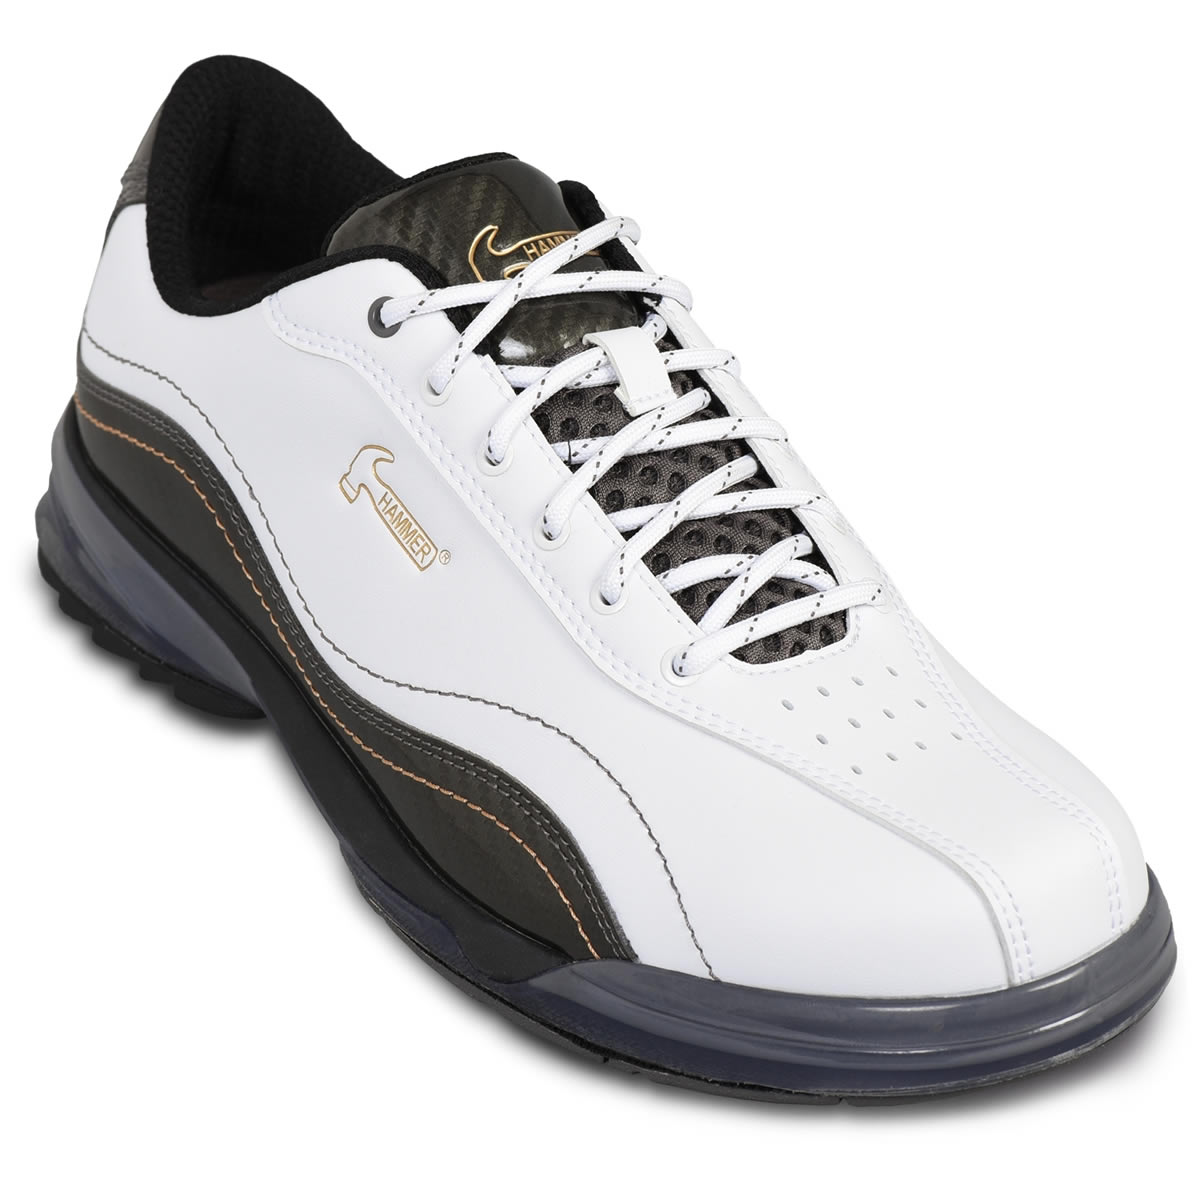 Hammer Force White/Carbon Wide Width Men's Bowling Shoes